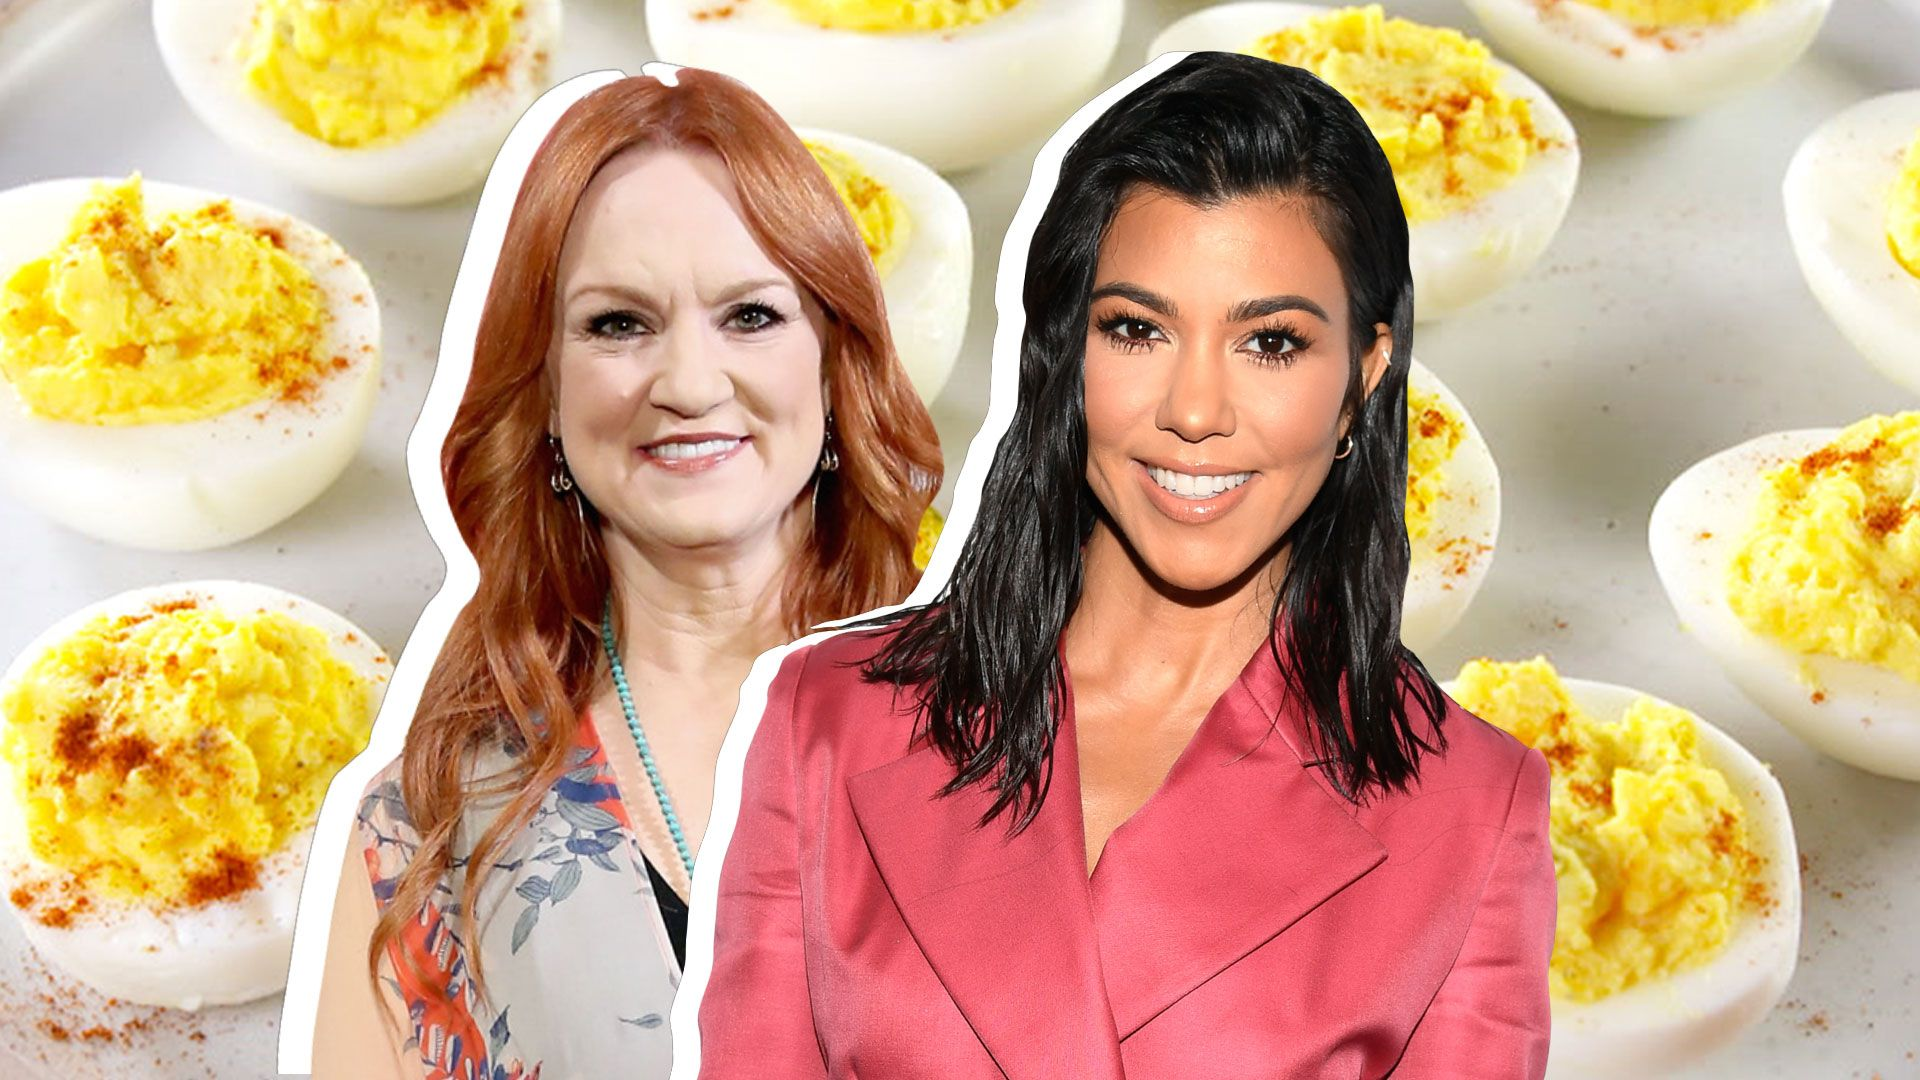 Kourtney Kardashian Vs. Ree Drummond: Whose Deviled Eggs Are Better?